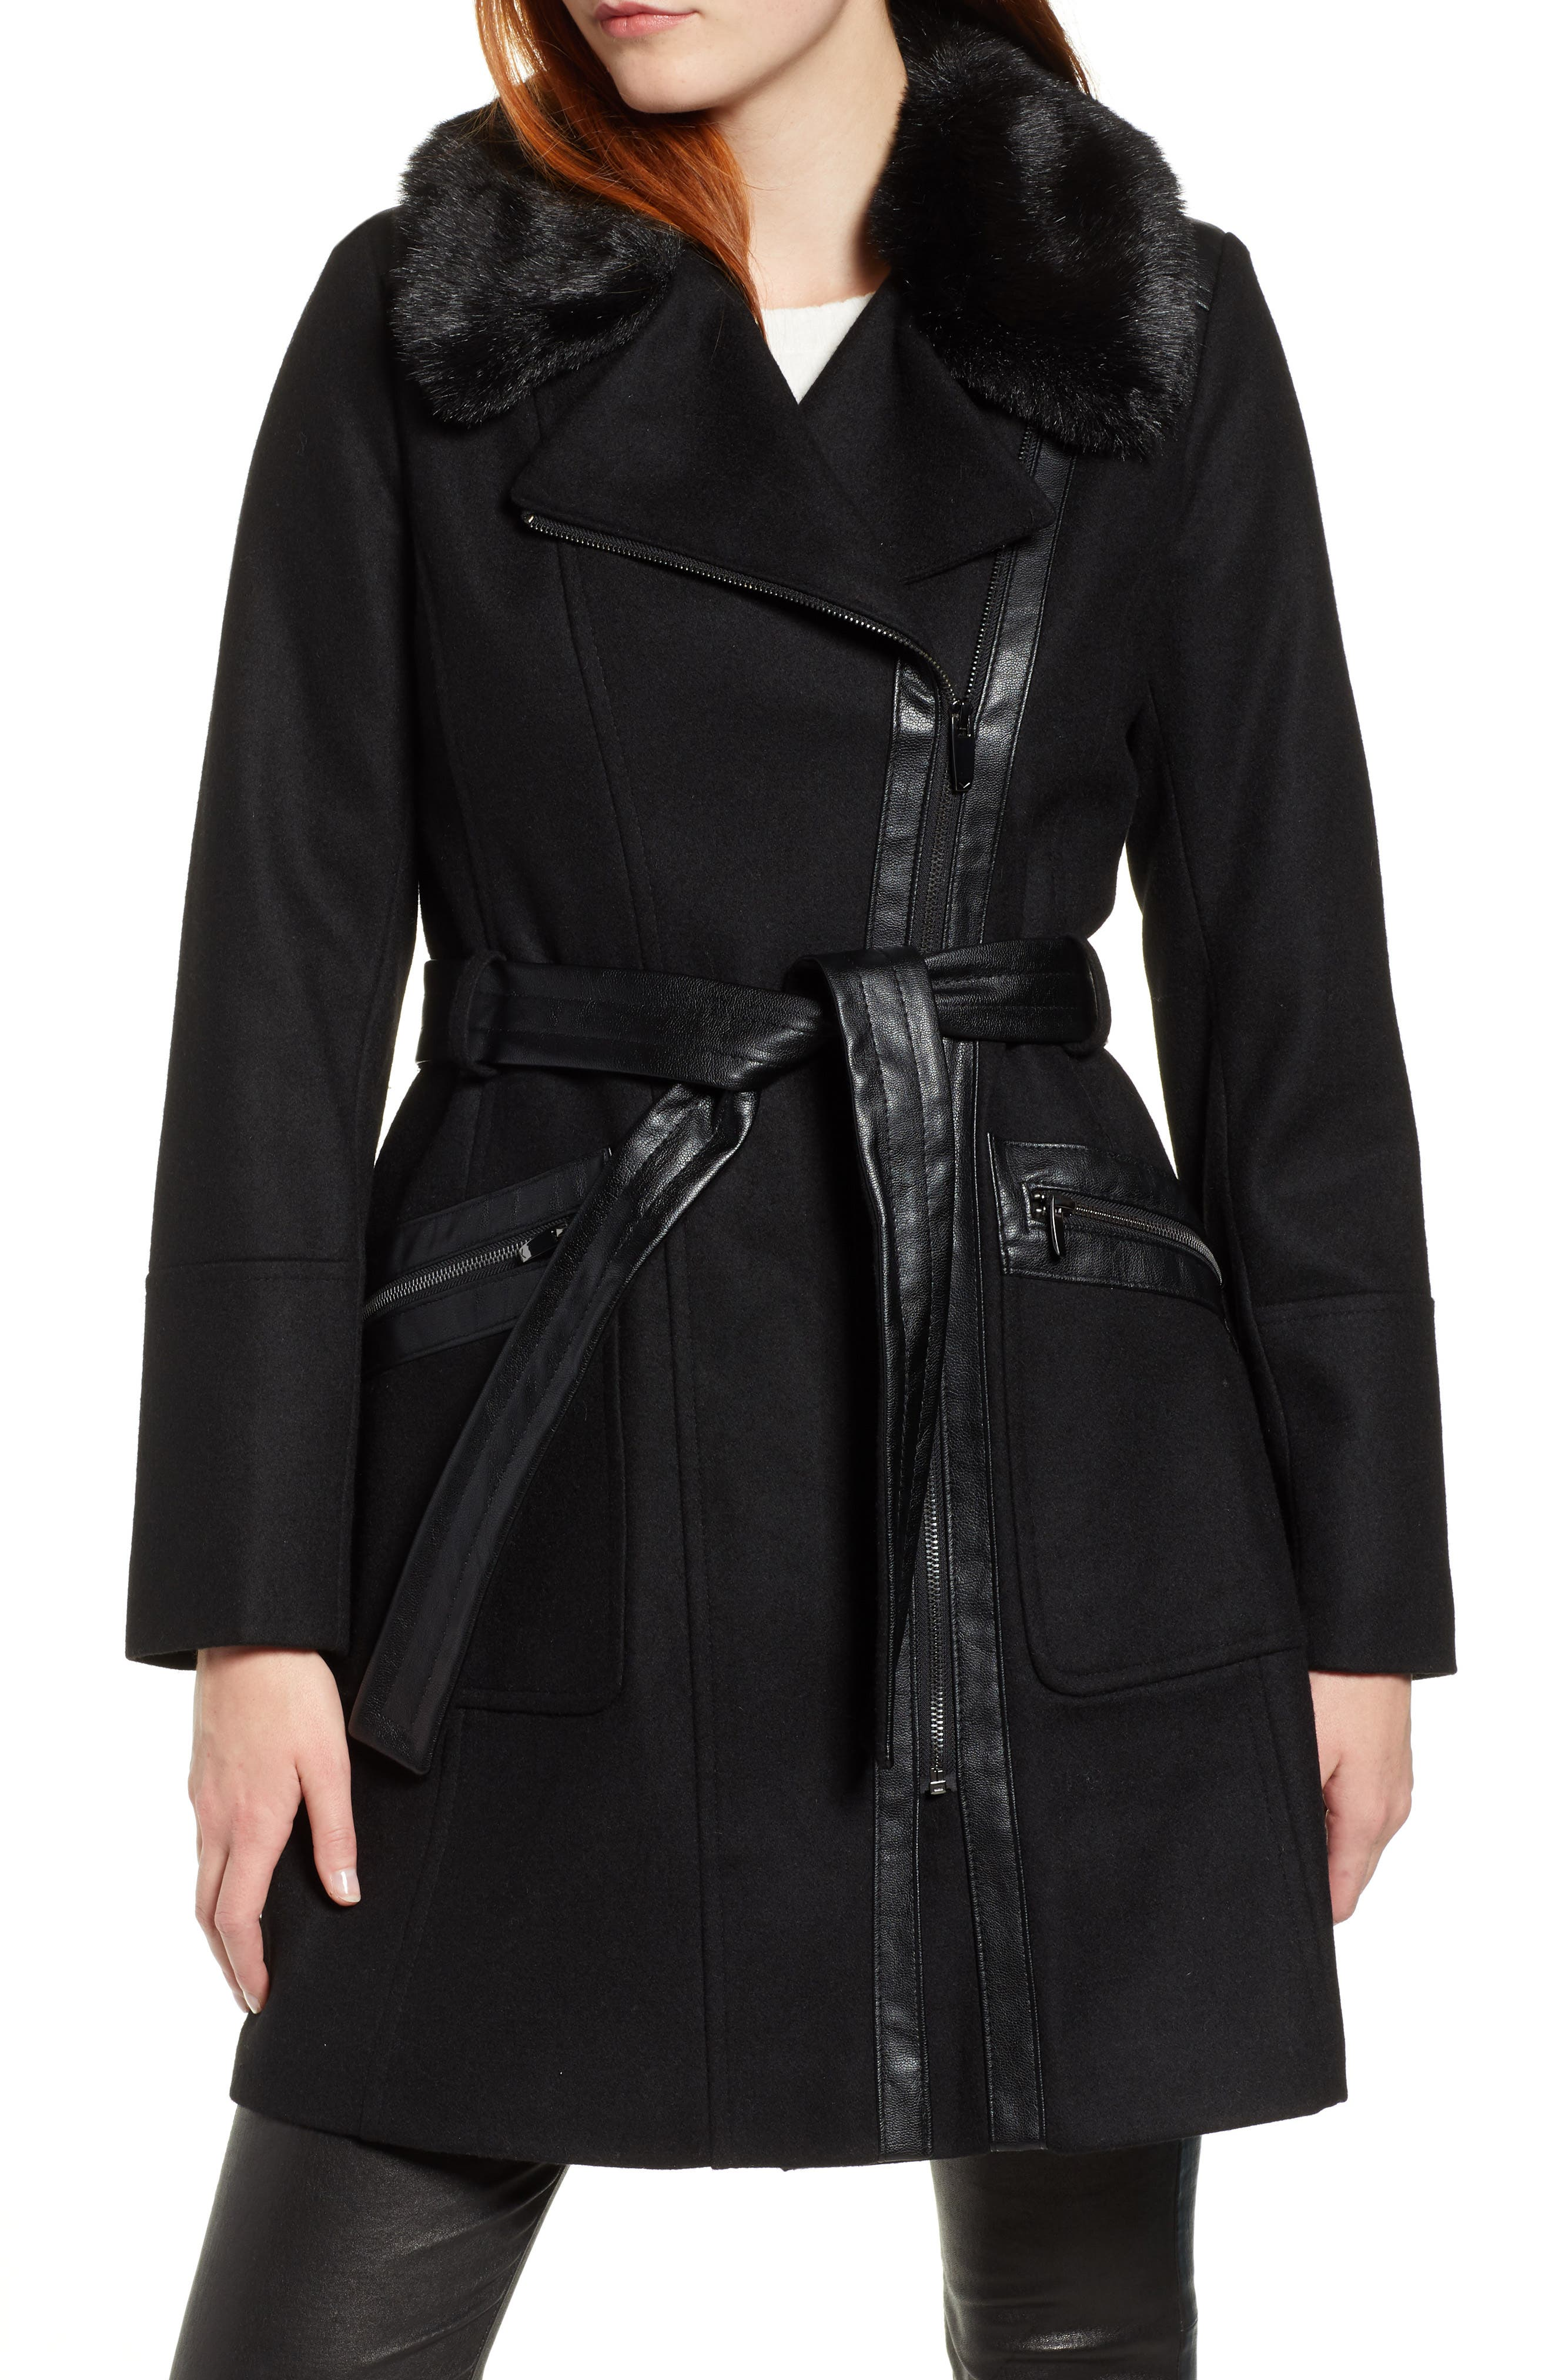 VIA SPIGA, Faux Fur Trim Belted Jacket, Main thumbnail 1, color, BLACK